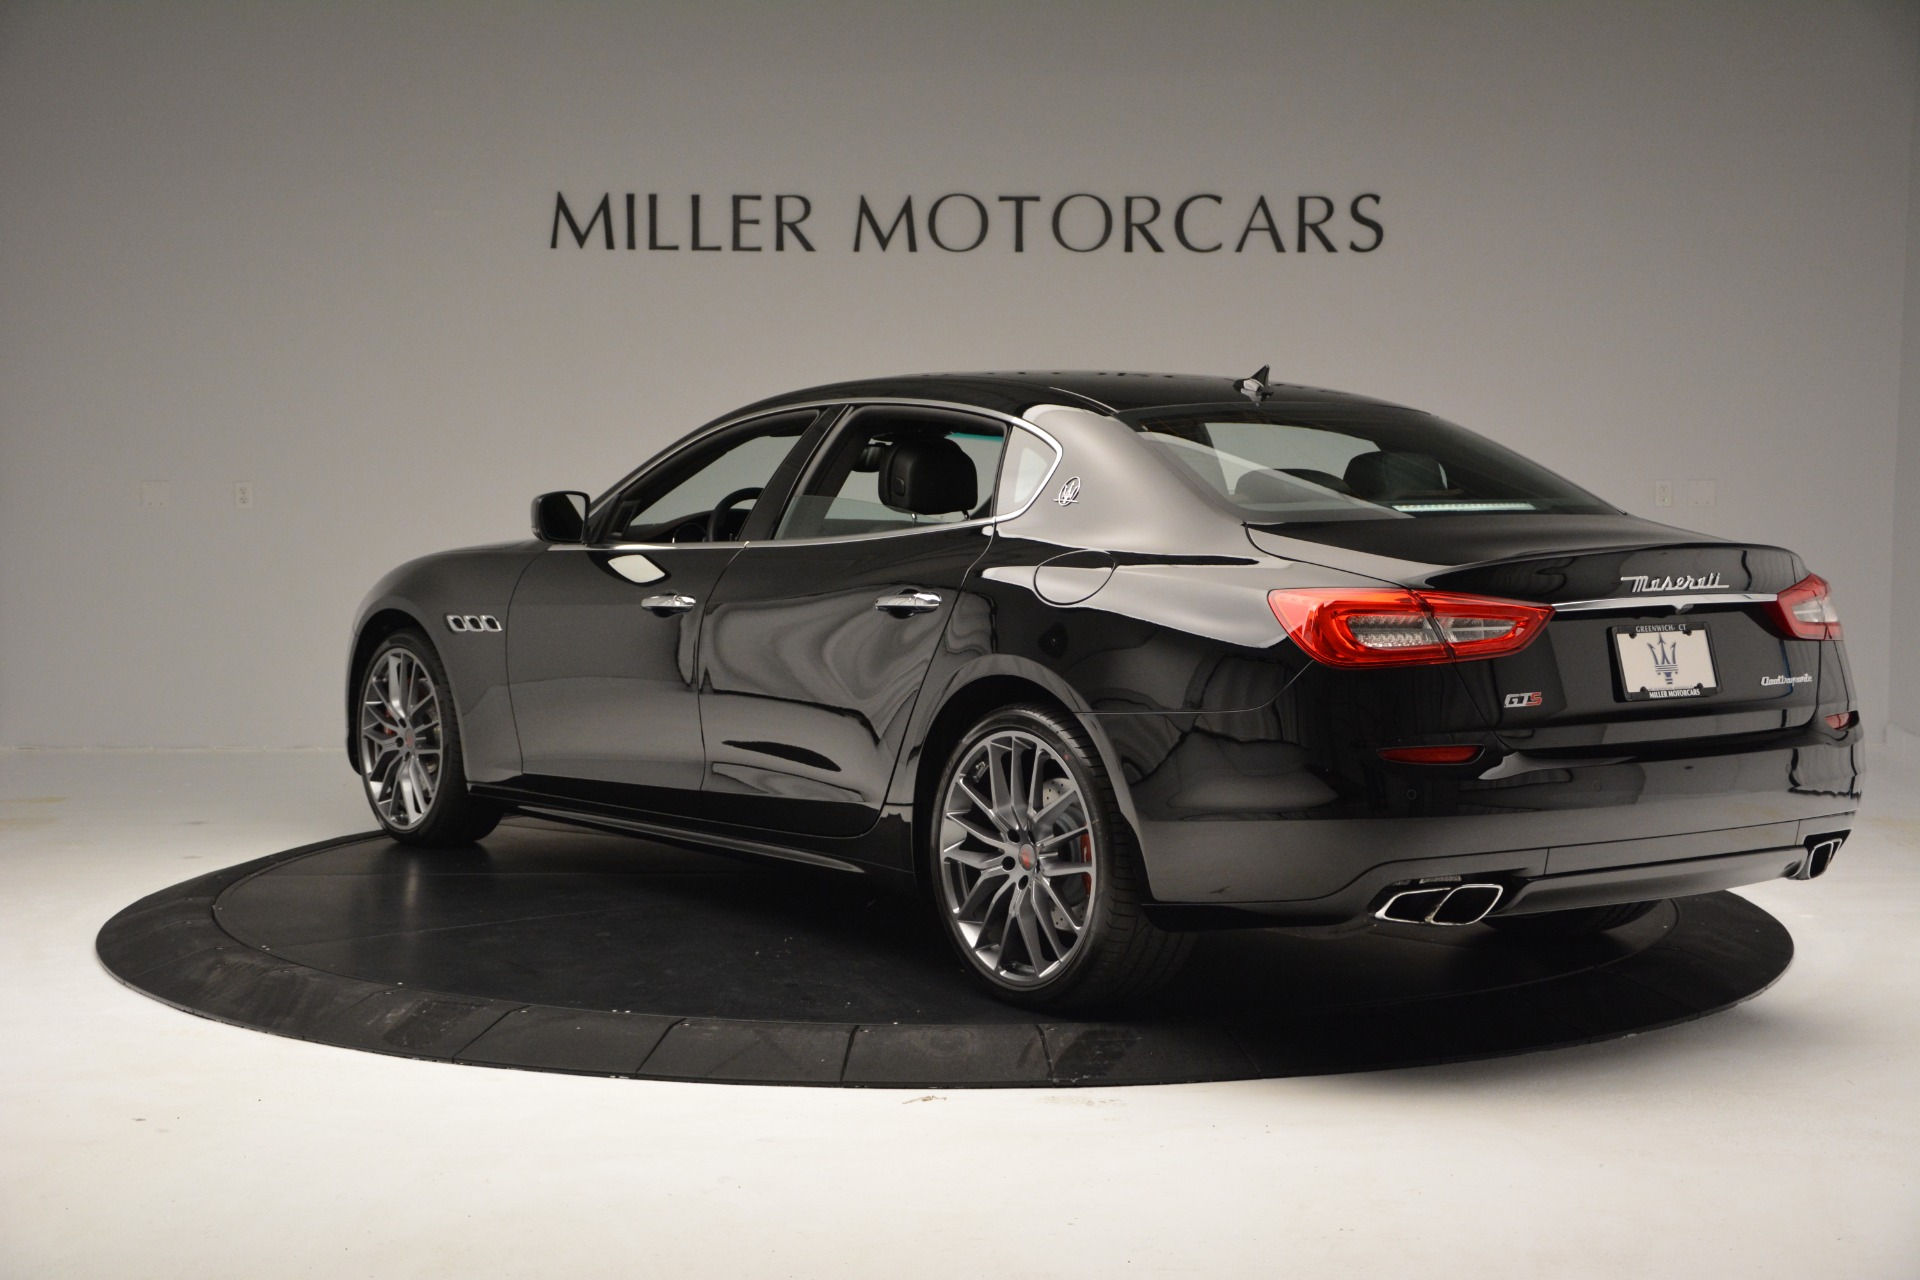 Used 2015 Maserati Quattroporte GTS For Sale In Westport, CT 2993_p5